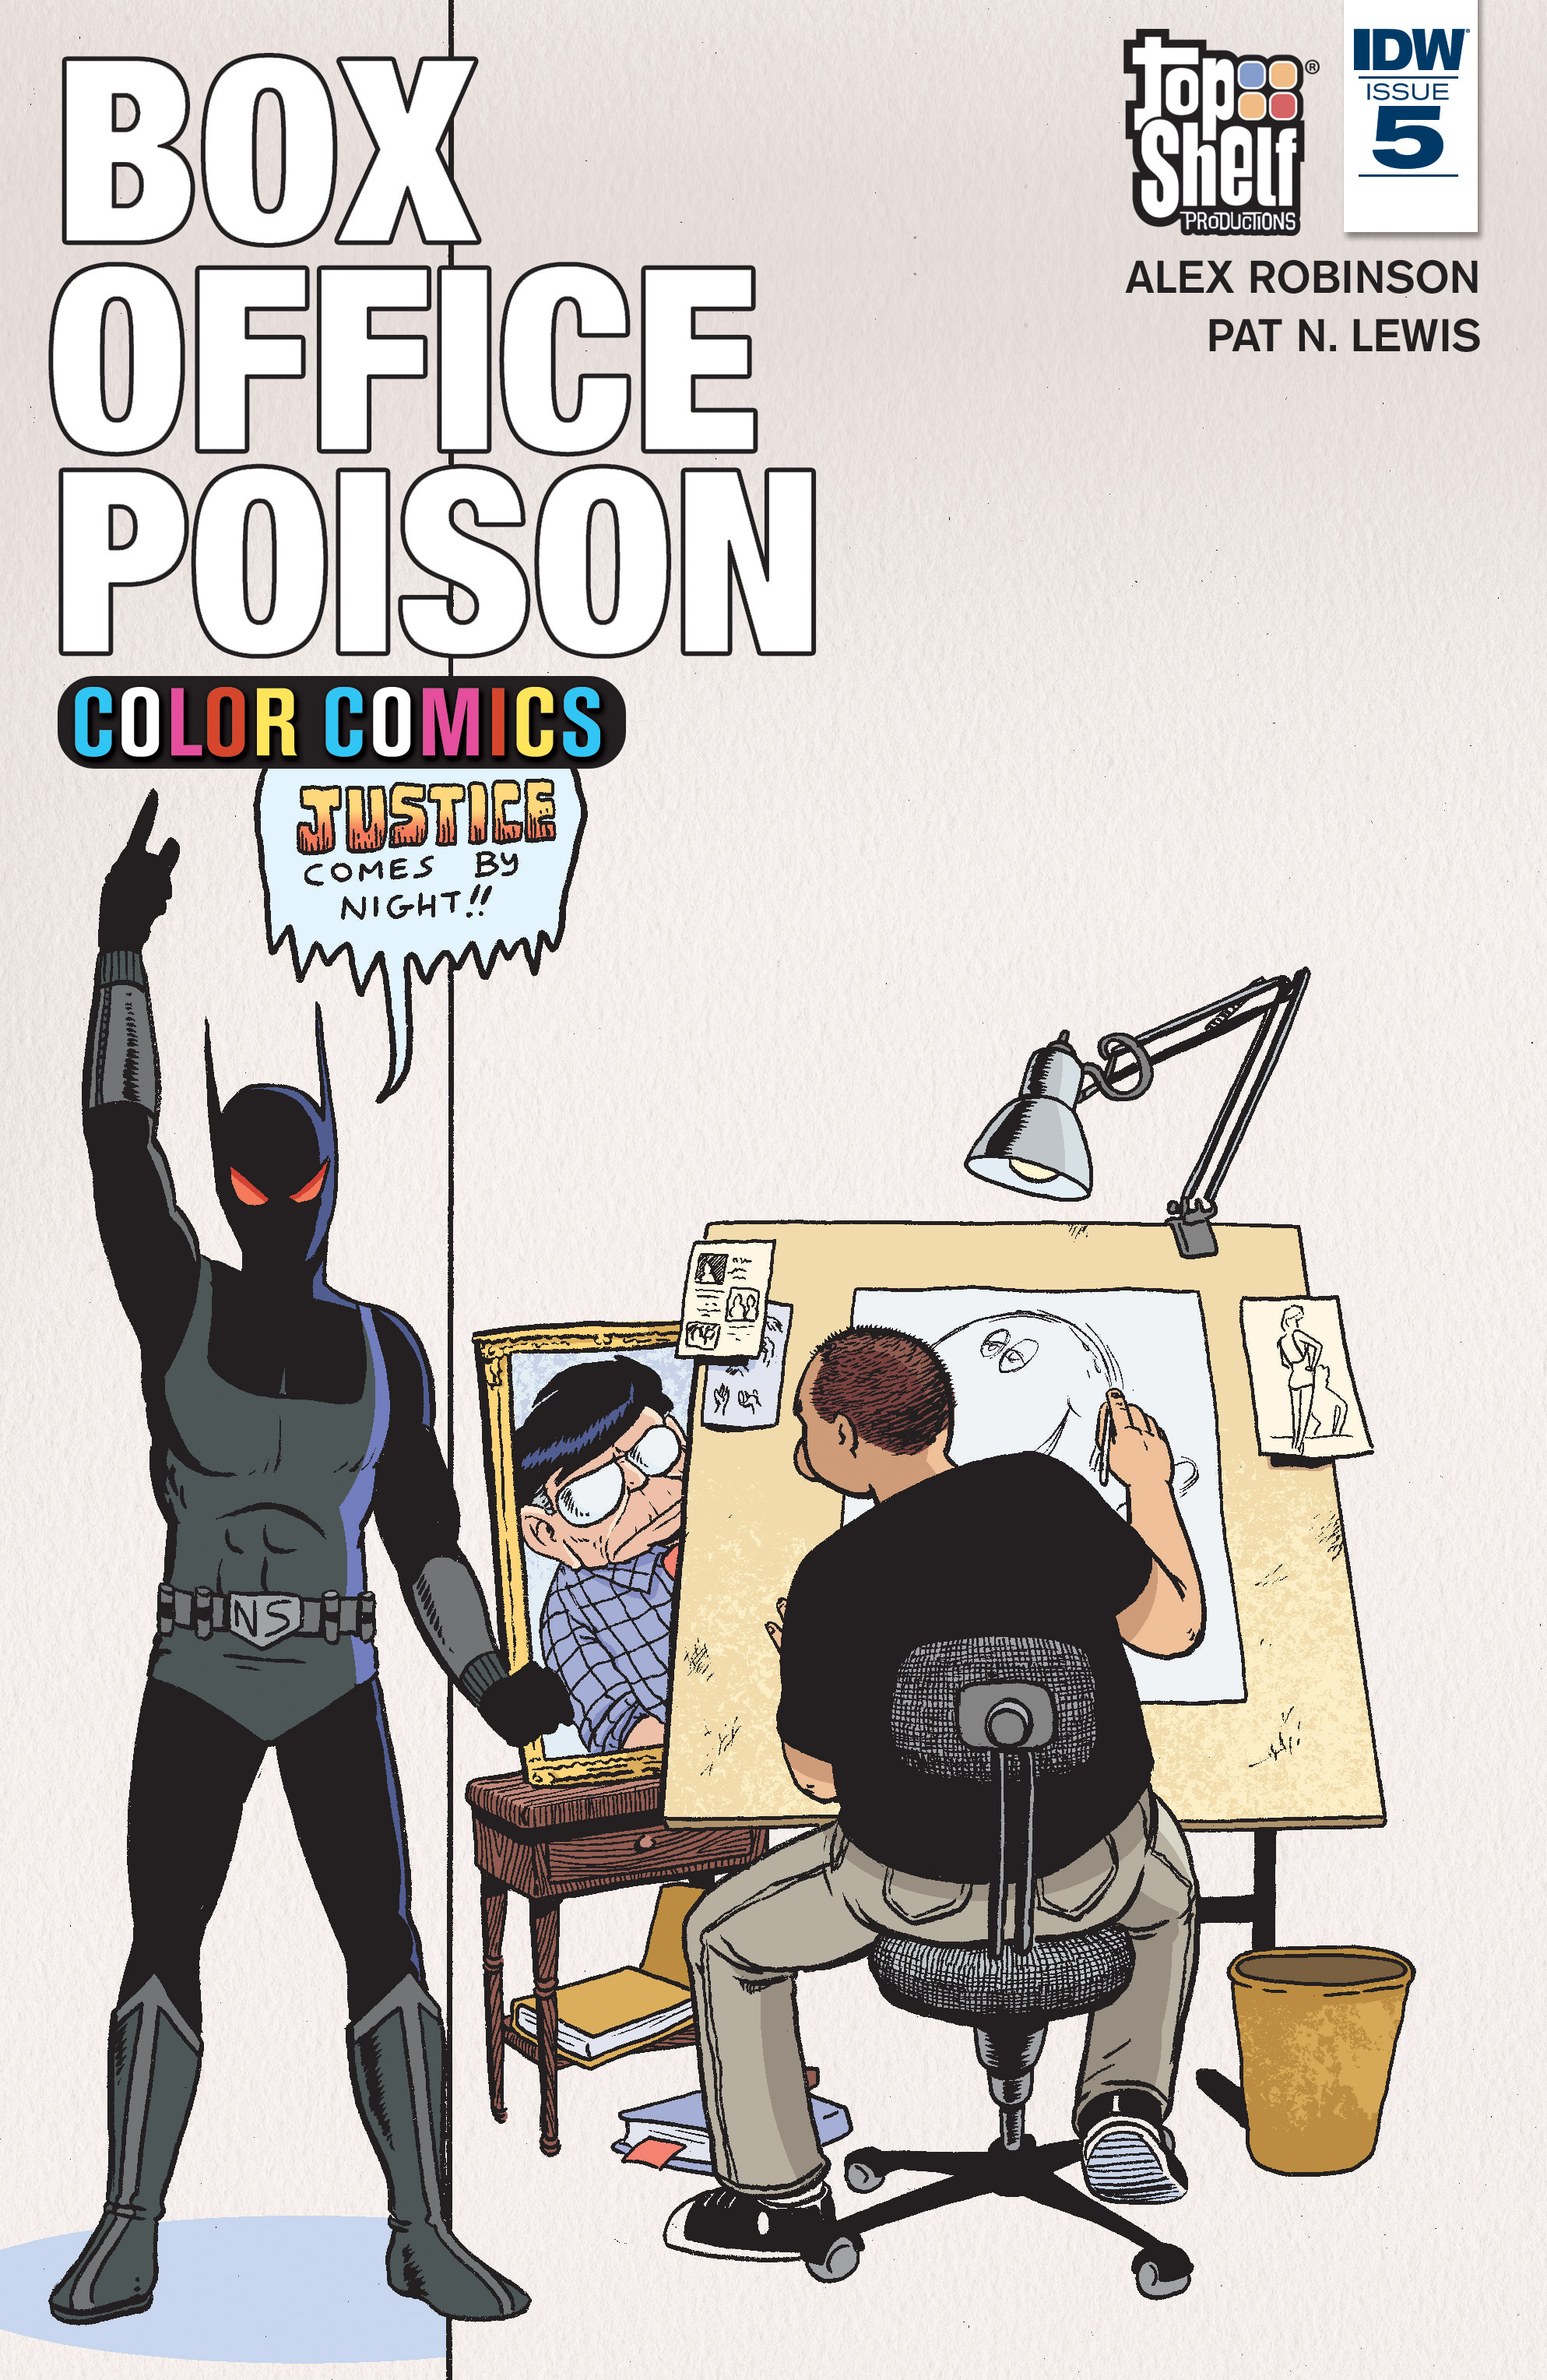 Read online Box Office Poison Color Comics comic -  Issue #5 - 1